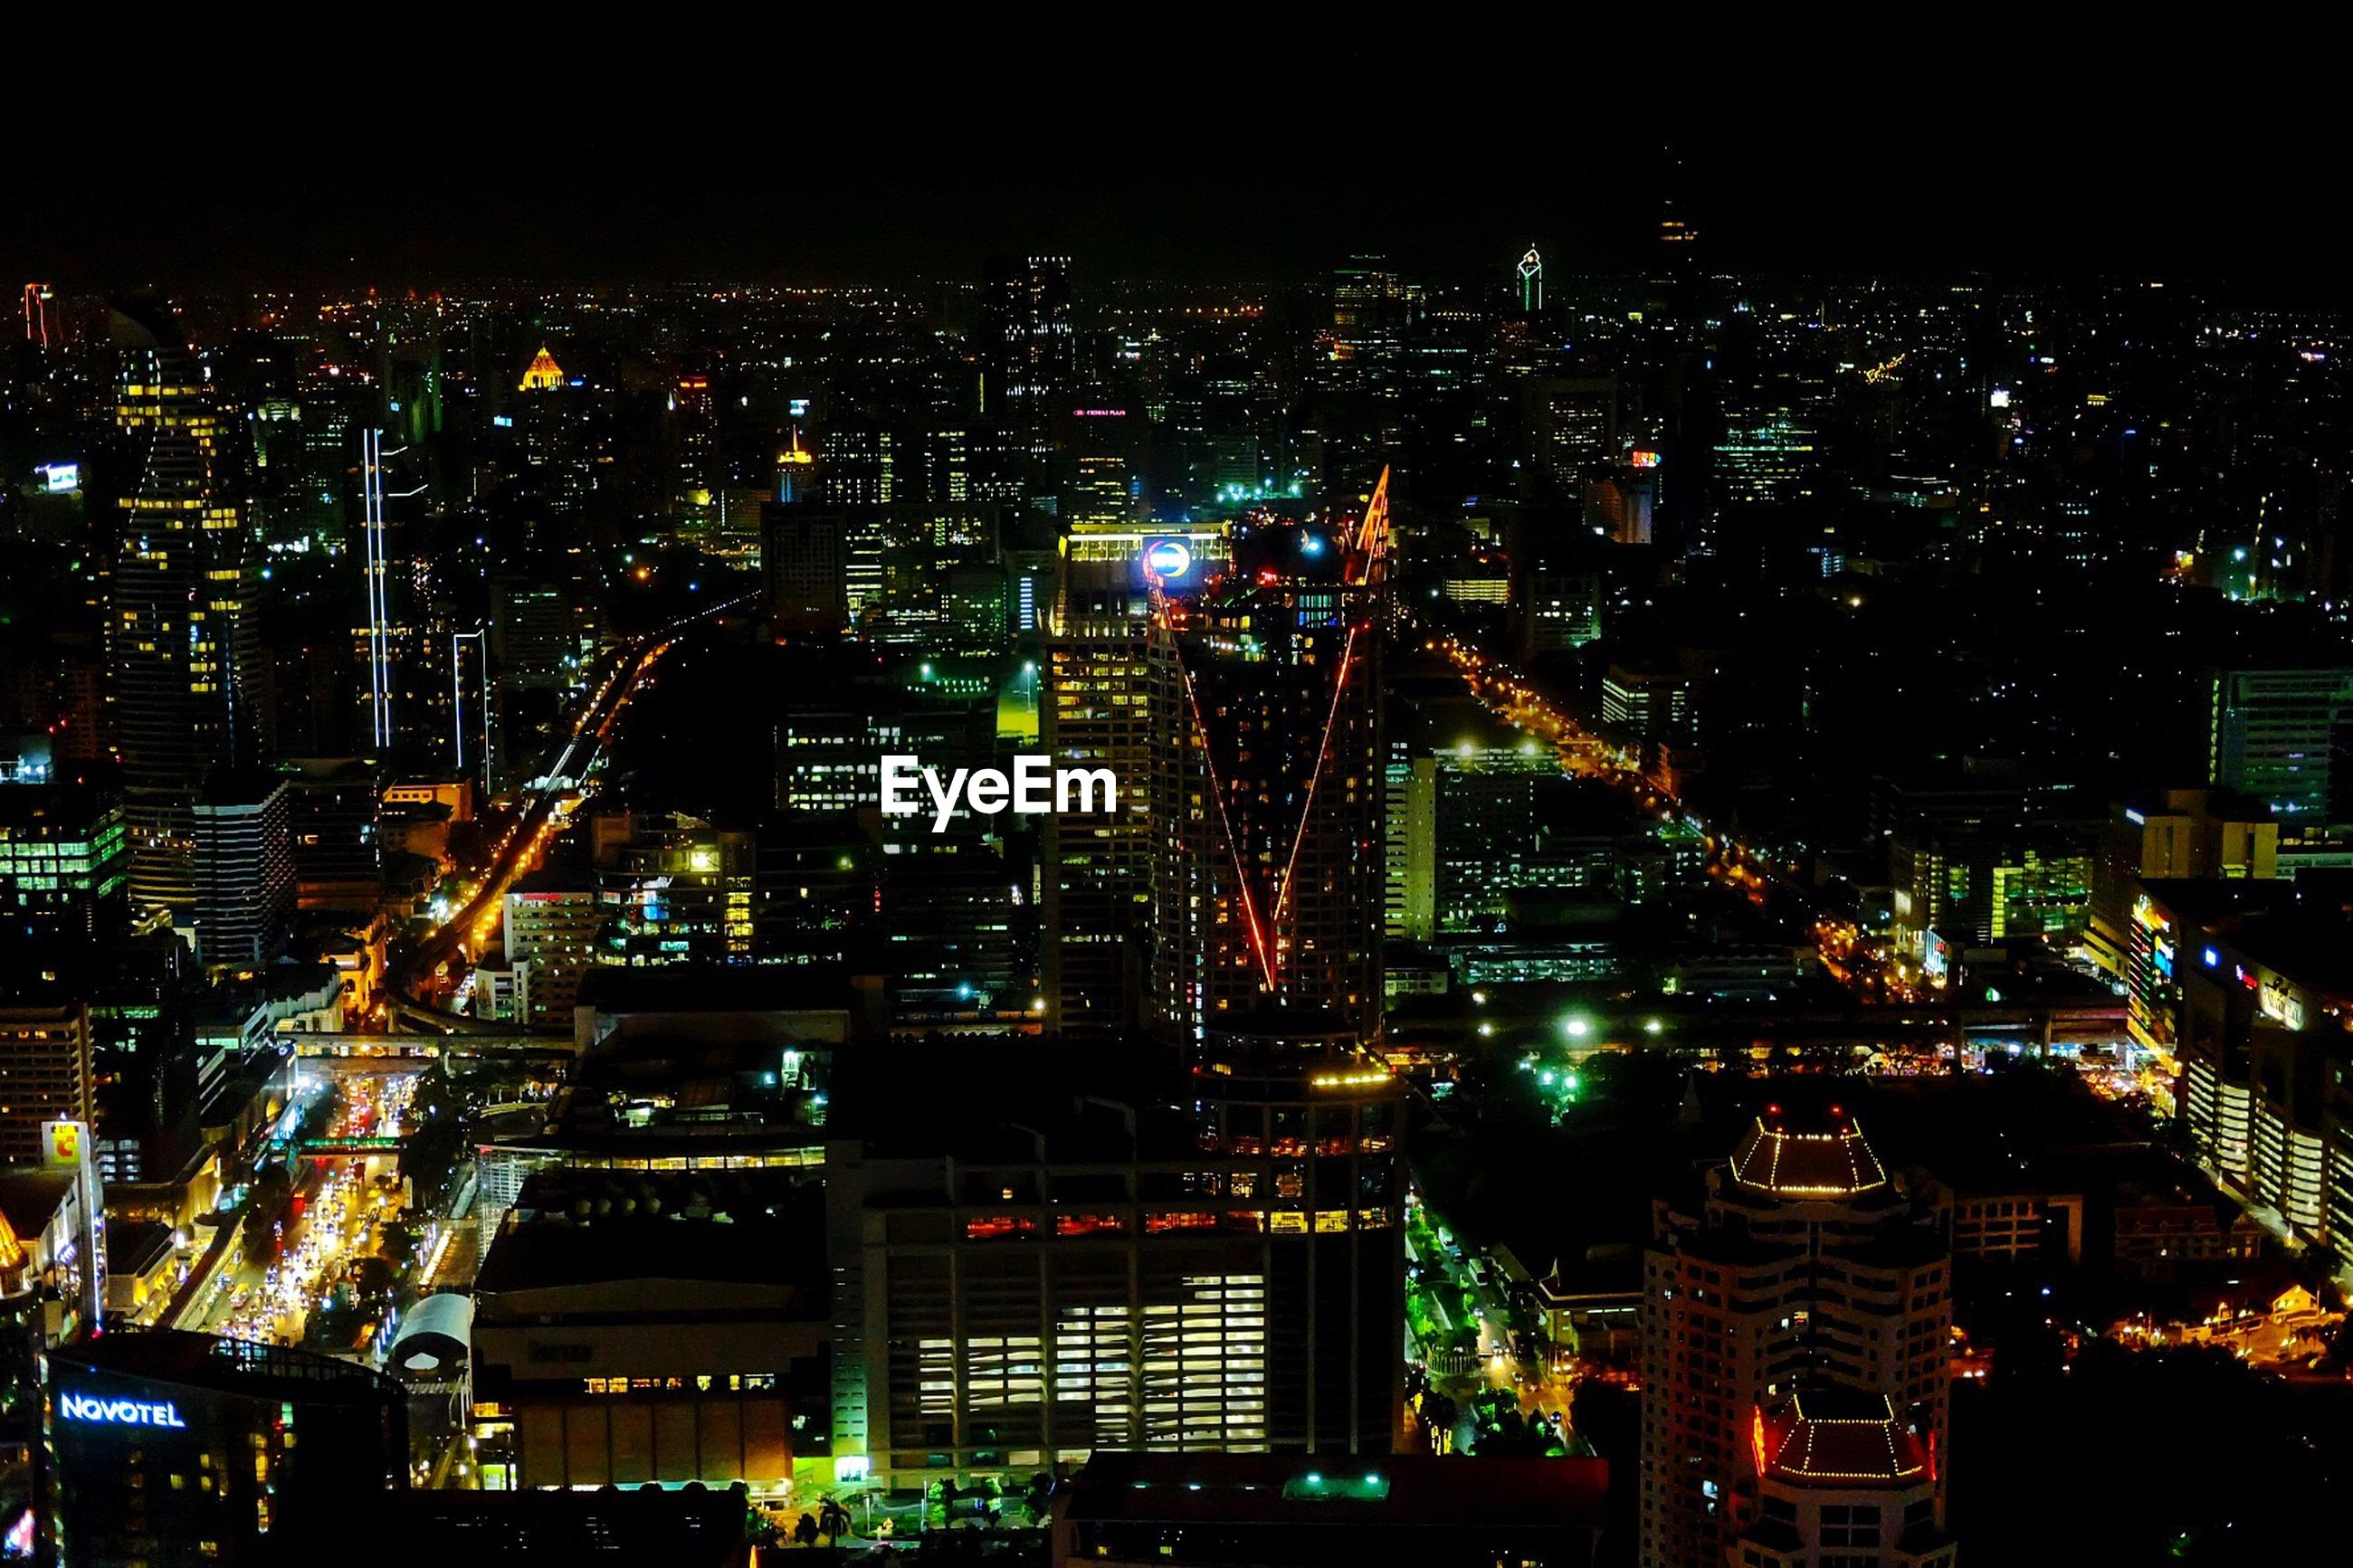 HIGH ANGLE VIEW OF ILLUMINATED CITY BUILDINGS